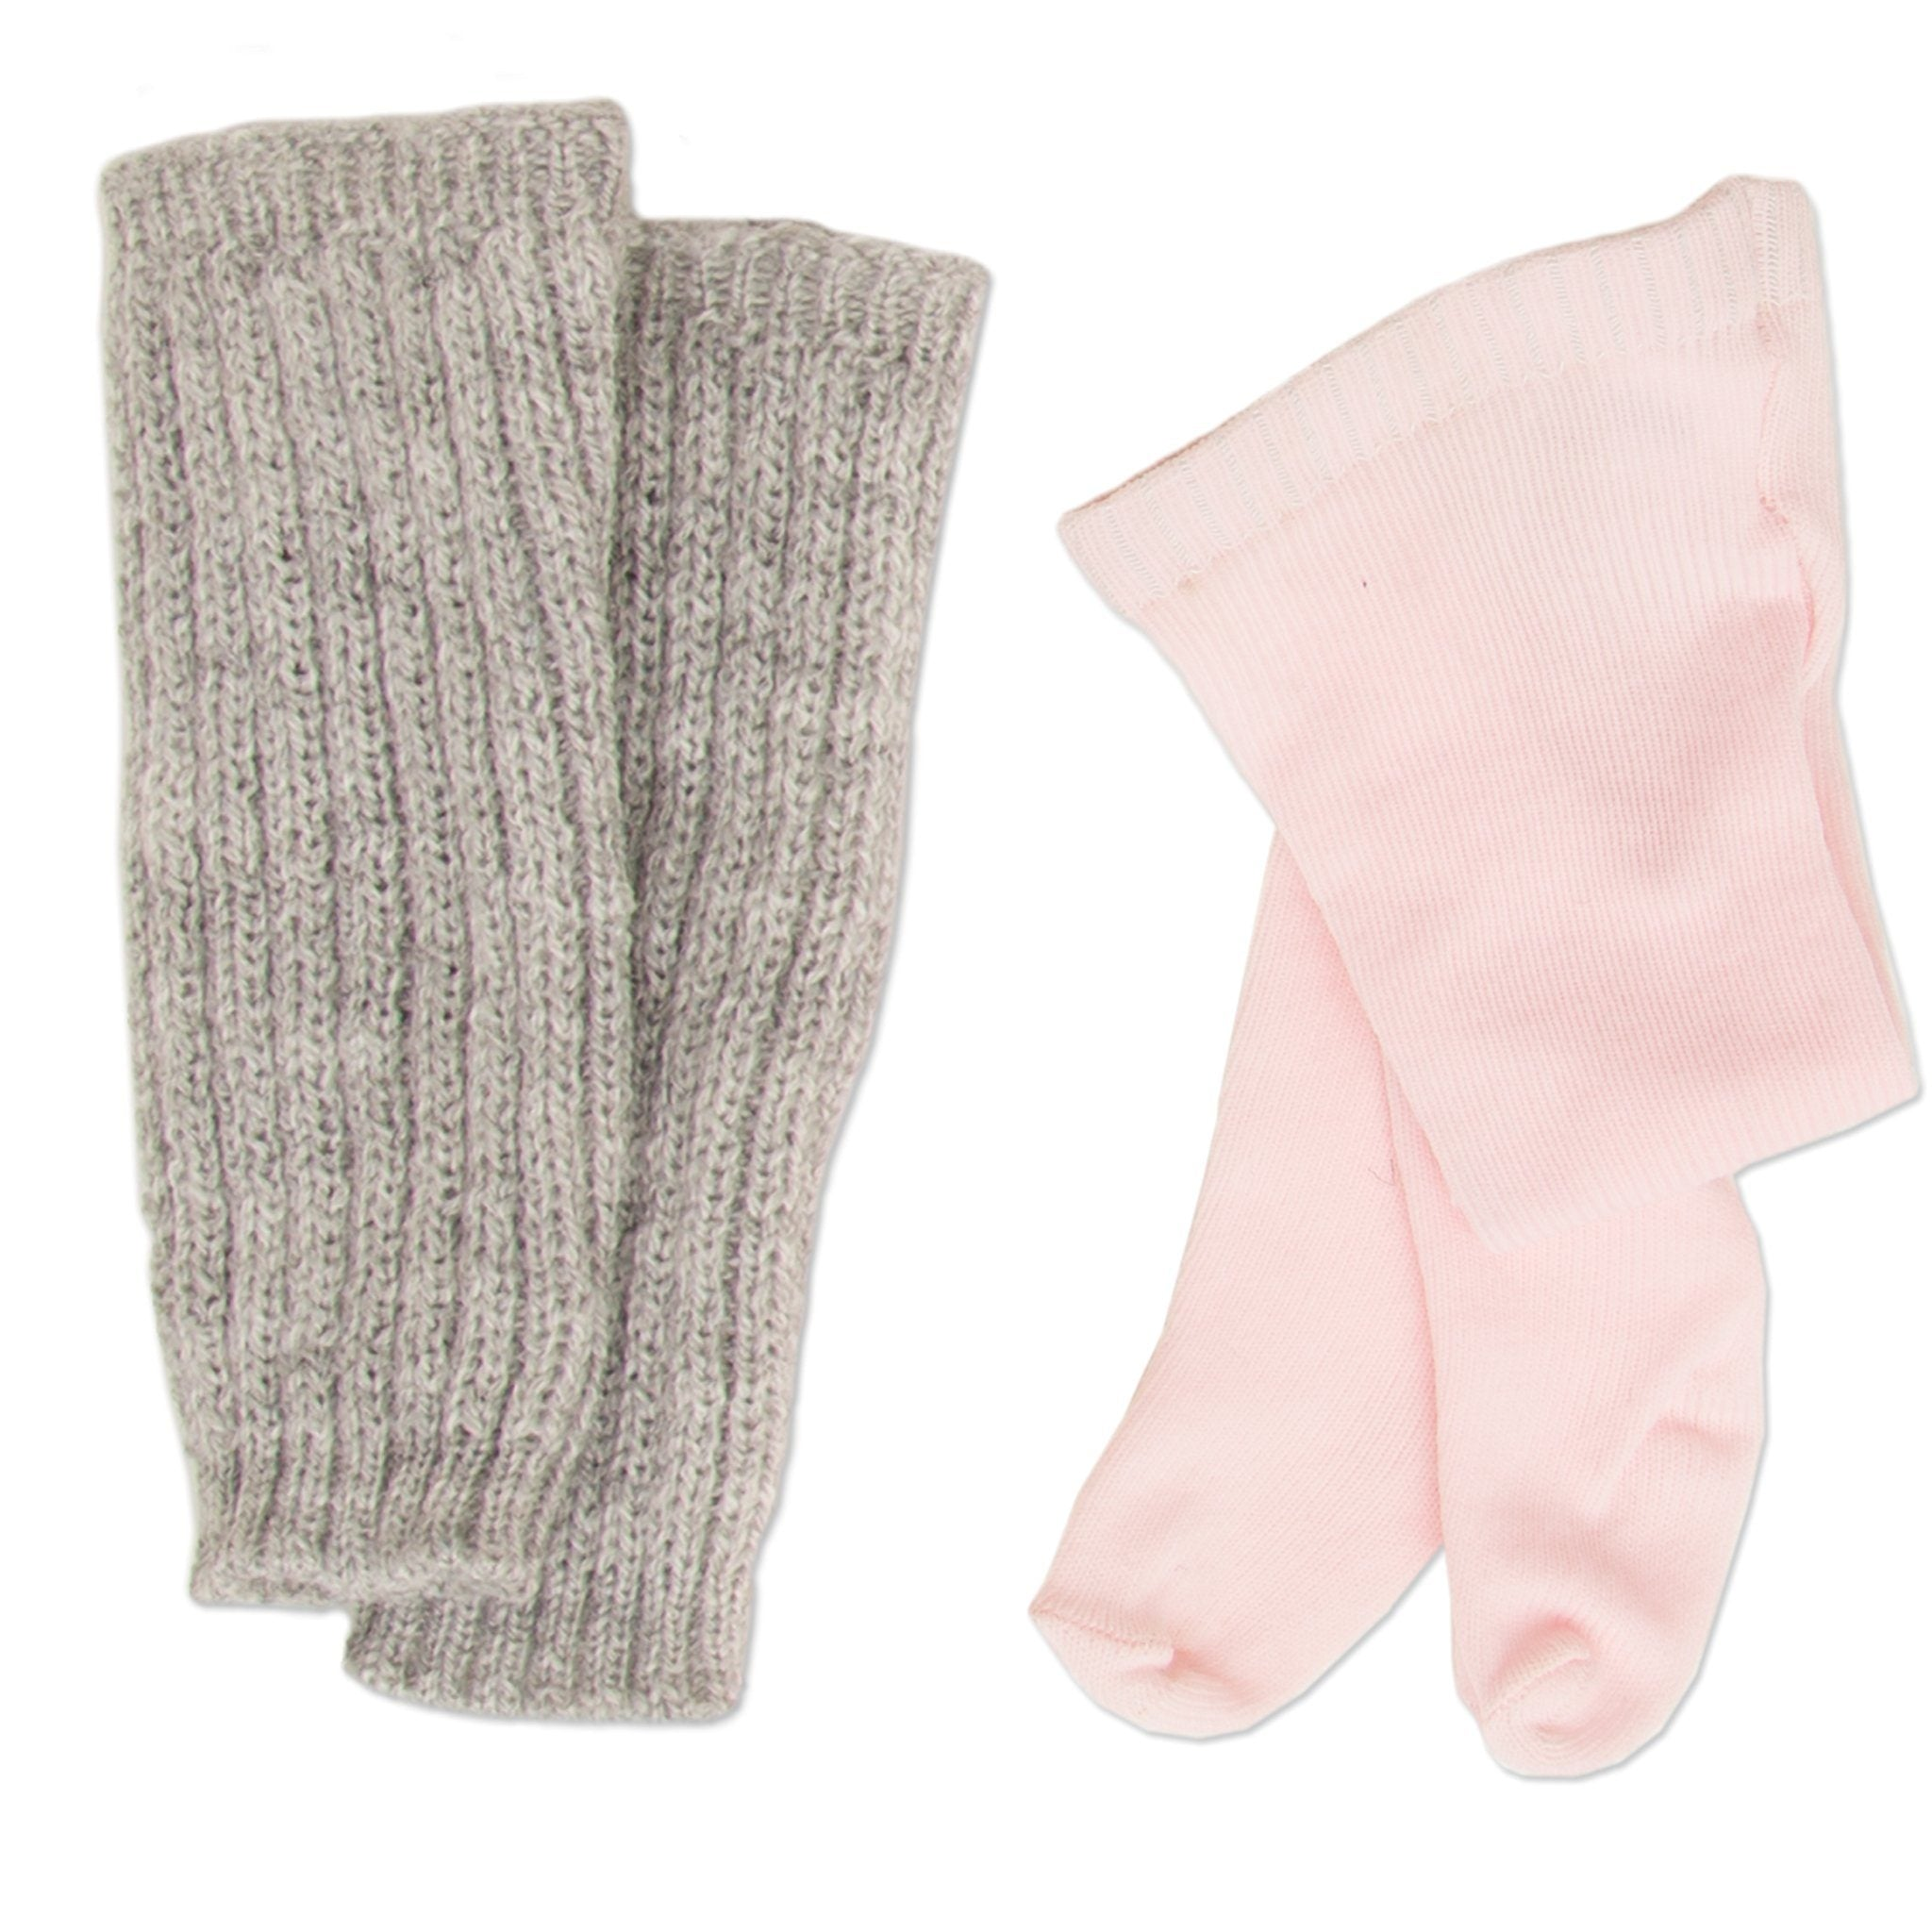 Pirouettes and Plies 10-piece ballet set grey leg warmers, pink tights fits all 18 inch dolls.